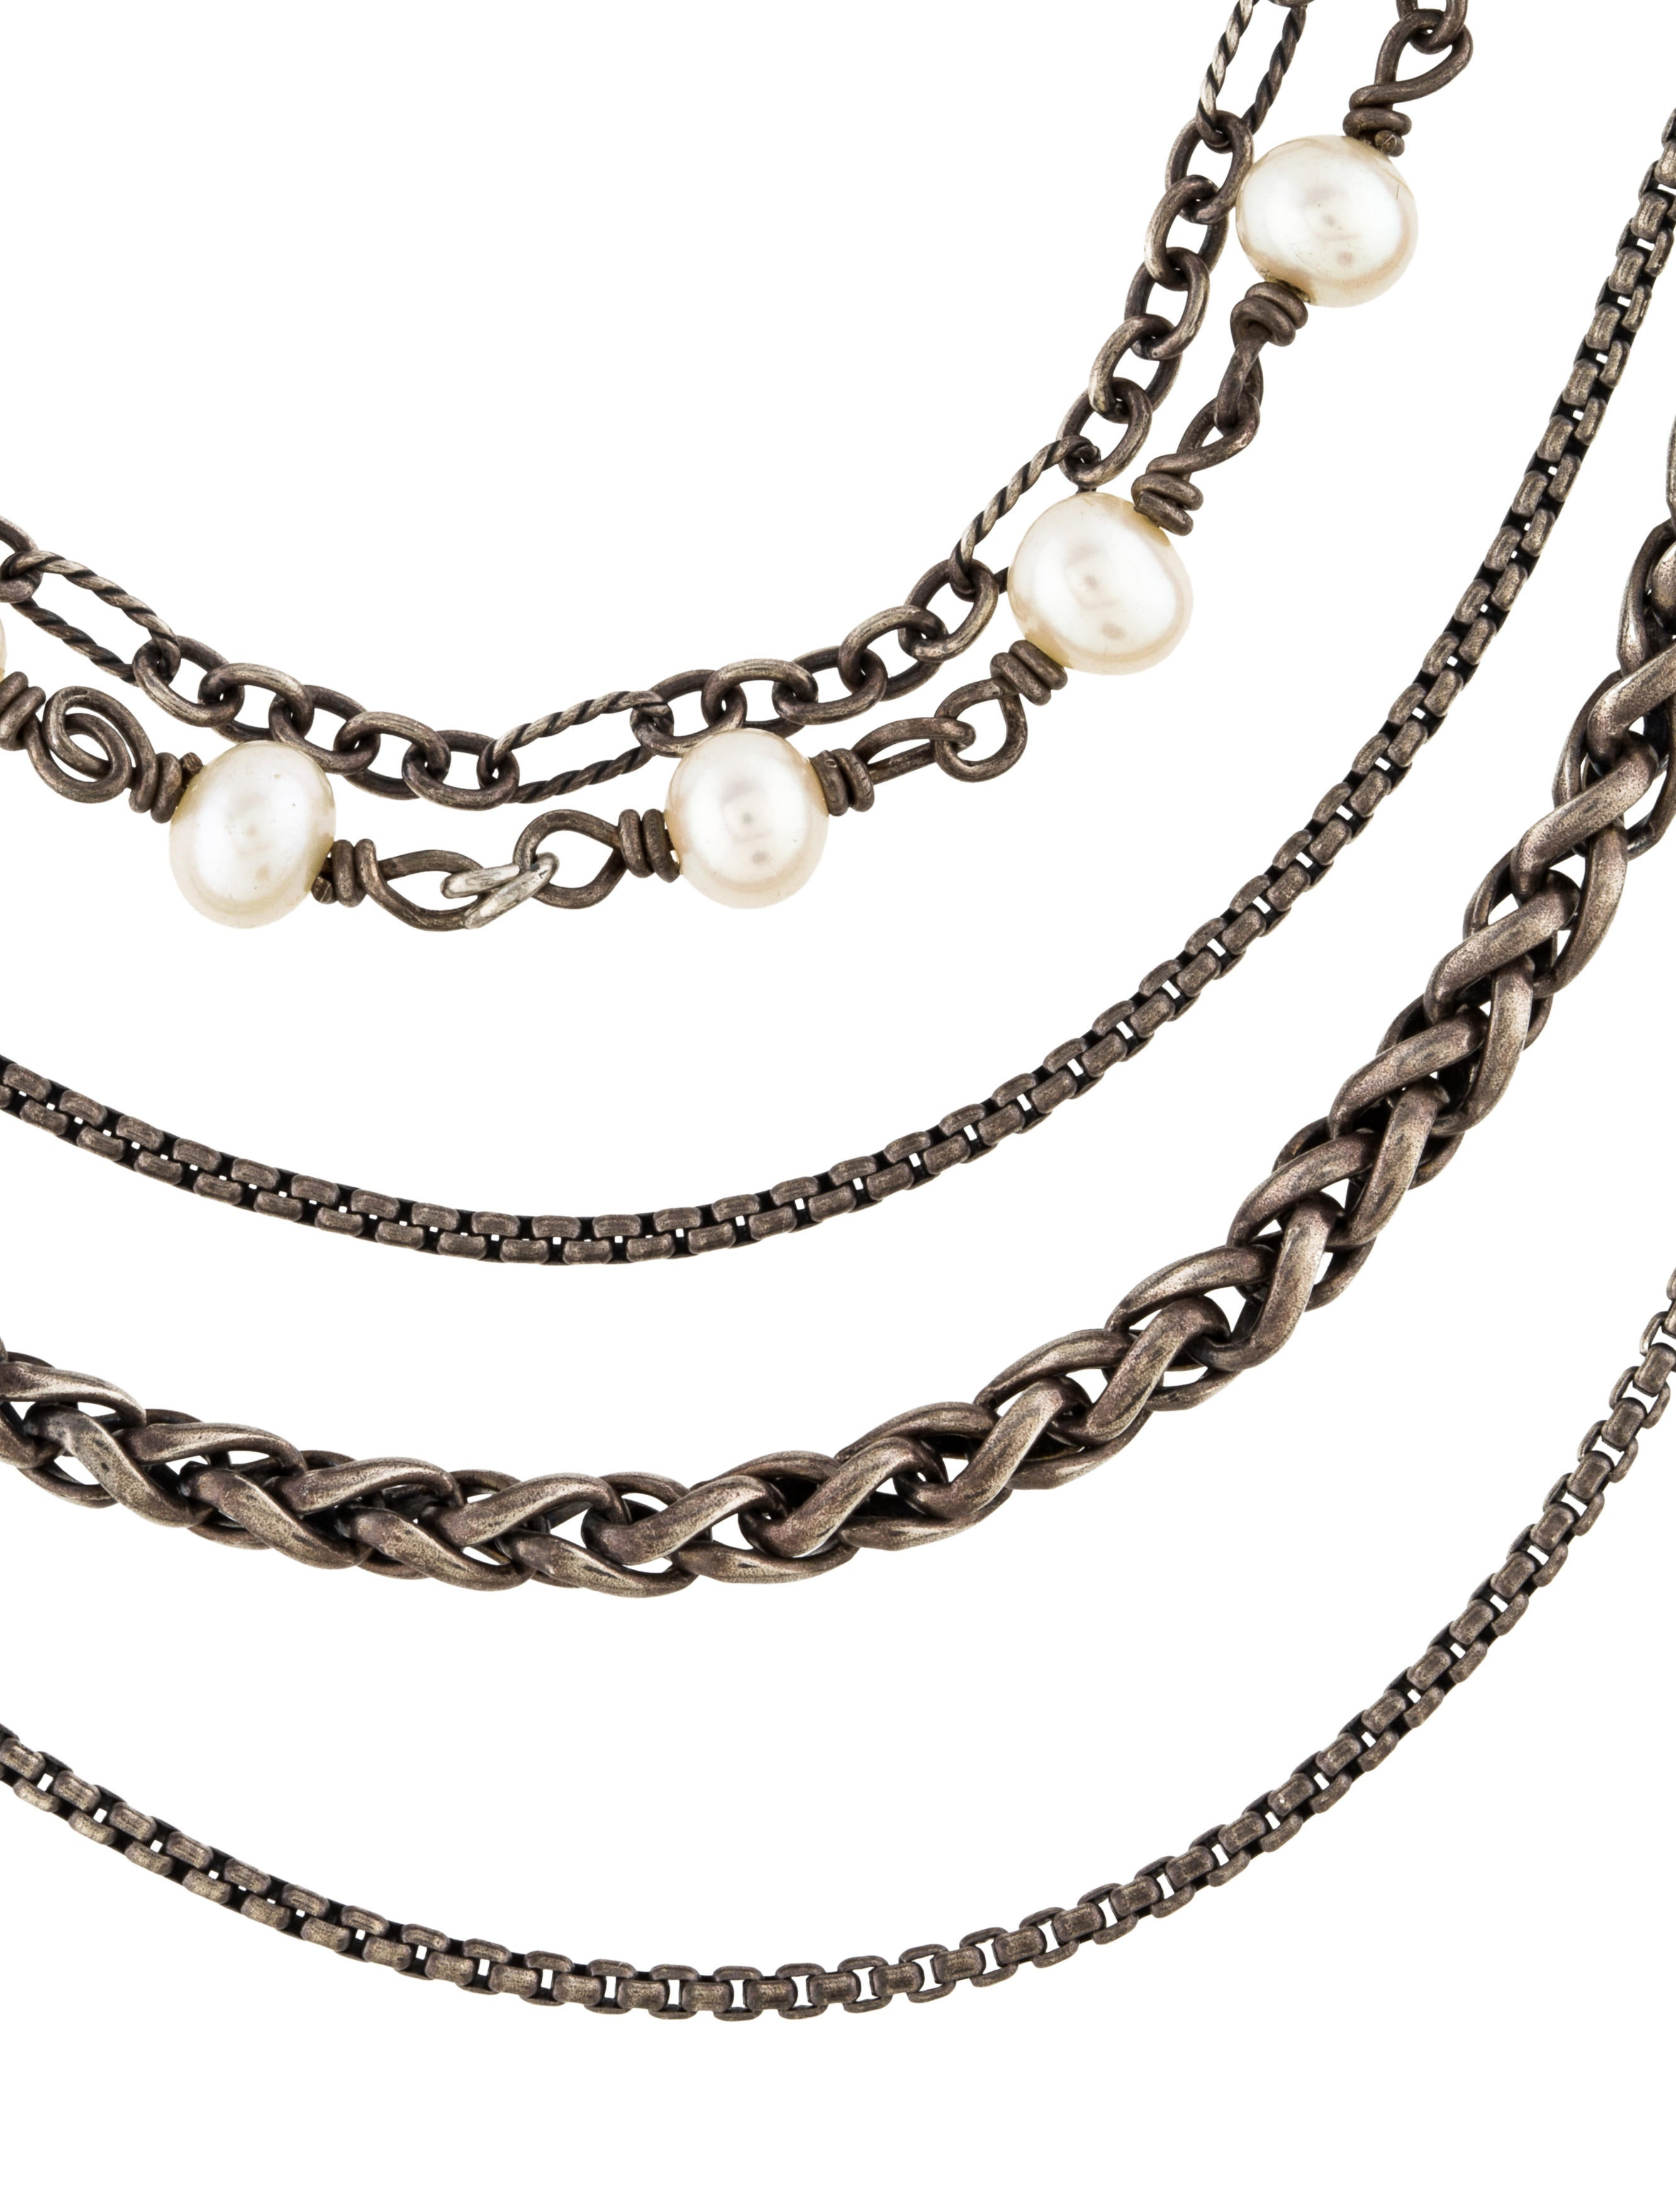 David Yurman Pearl Multi Strand Necklace Necklaces  : DVY393883enlarged from www.therealreal.com size 2664 x 3515 jpeg 469kB